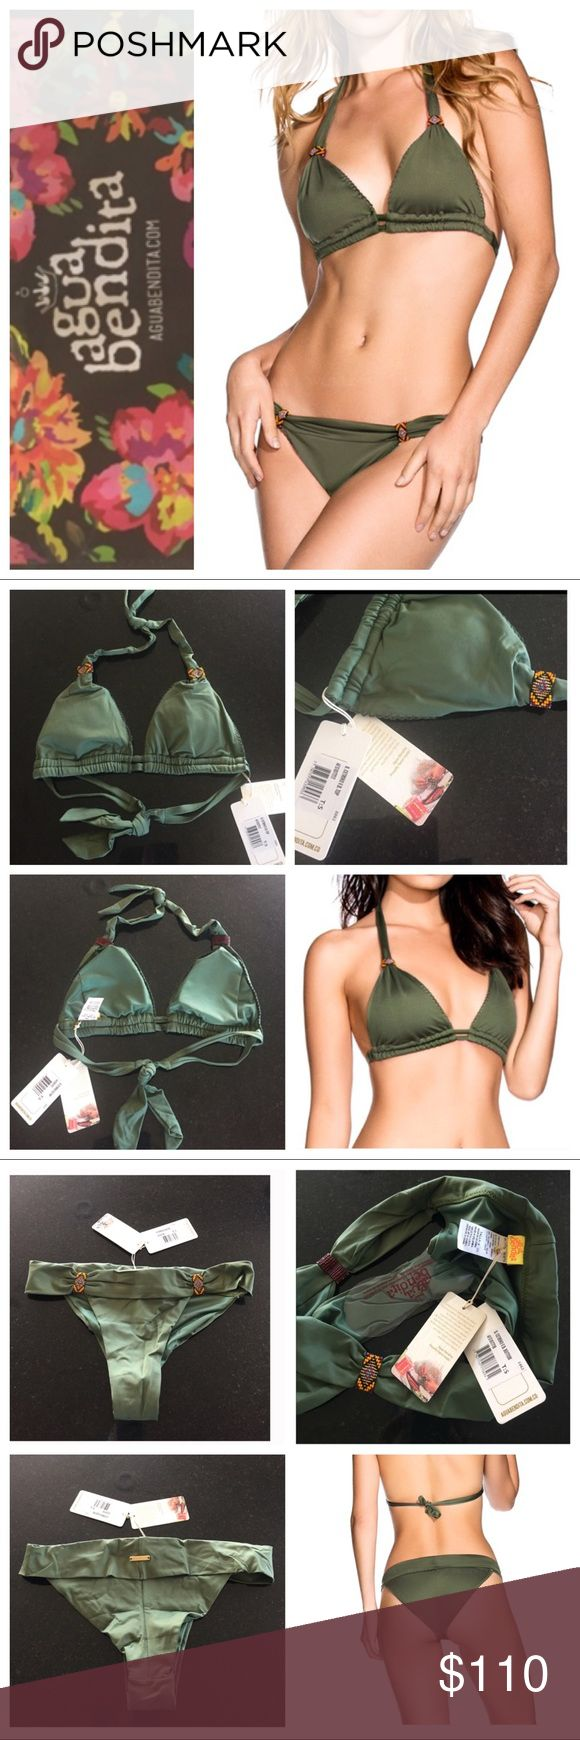 Agua Bendita 2 piece bikini set Agua Bendita cetrino beaded detail olive green 2 piece bikini set, size small.  Beautifully hand crafted in Columbia!  Includes the triangle style top with removable pads and the Latin cut bottoms.  NWT and hygiene liner intact.  Model pics from Pinterest to show fit. Agua Bendita Swim Bikinis